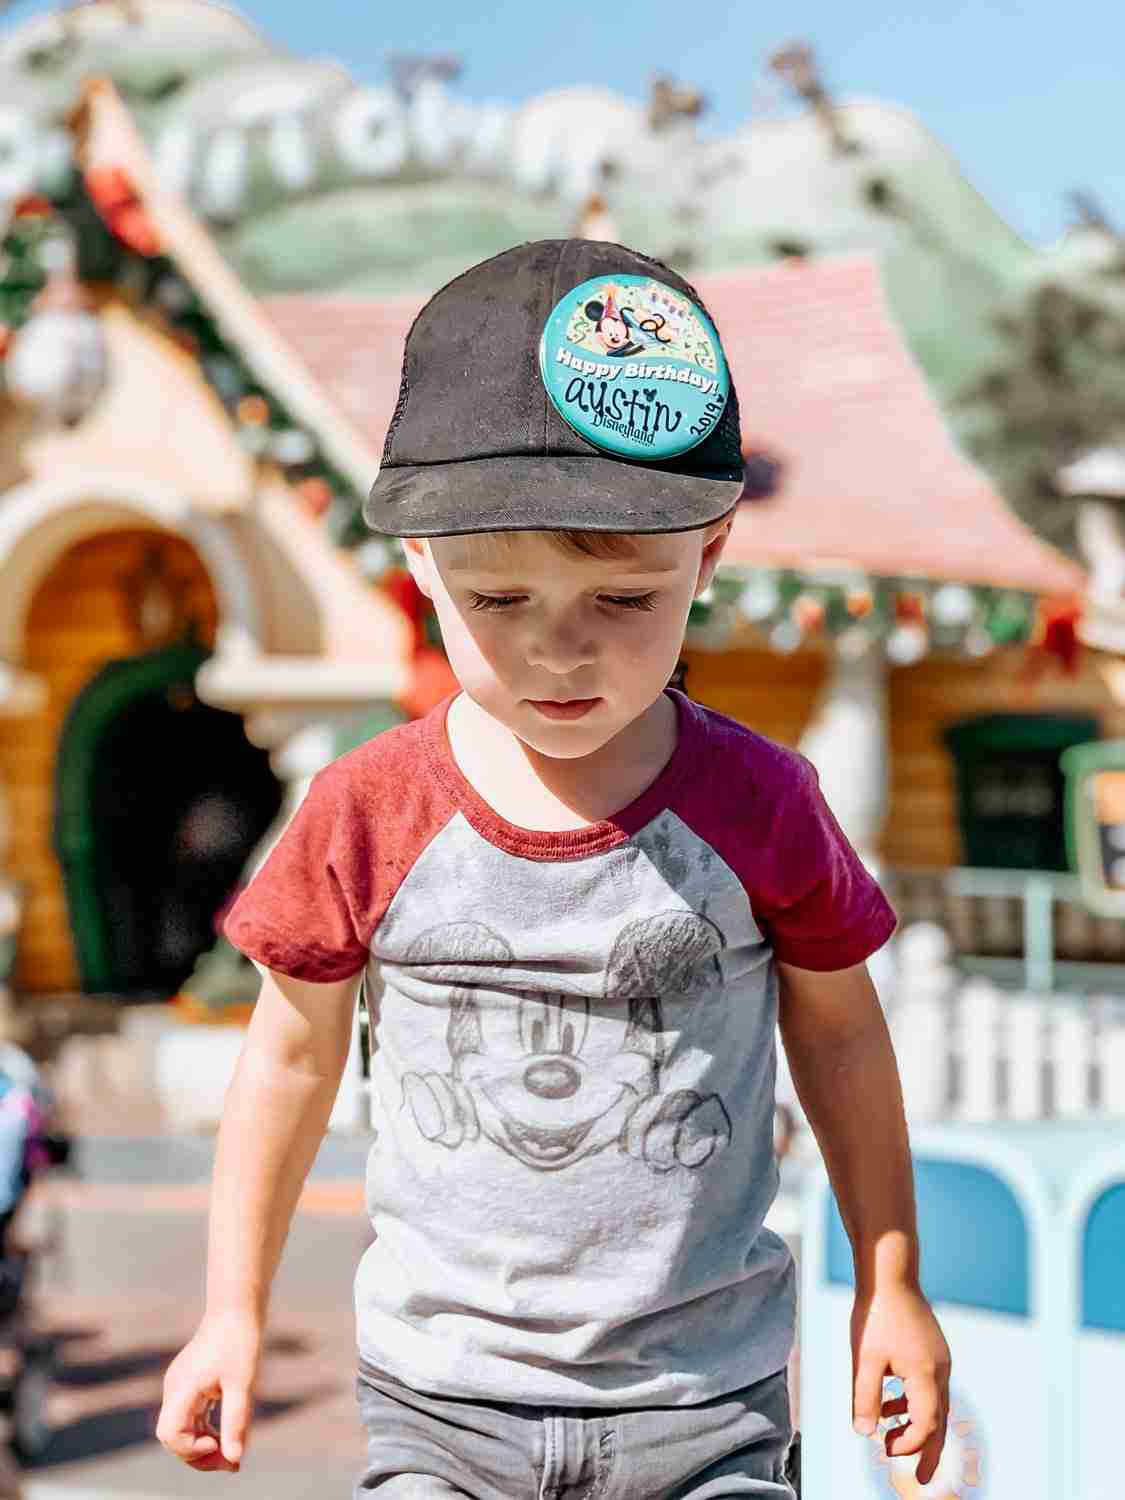 Little boy wearing Mickey Mouse shirt at Disneyland in Toontown